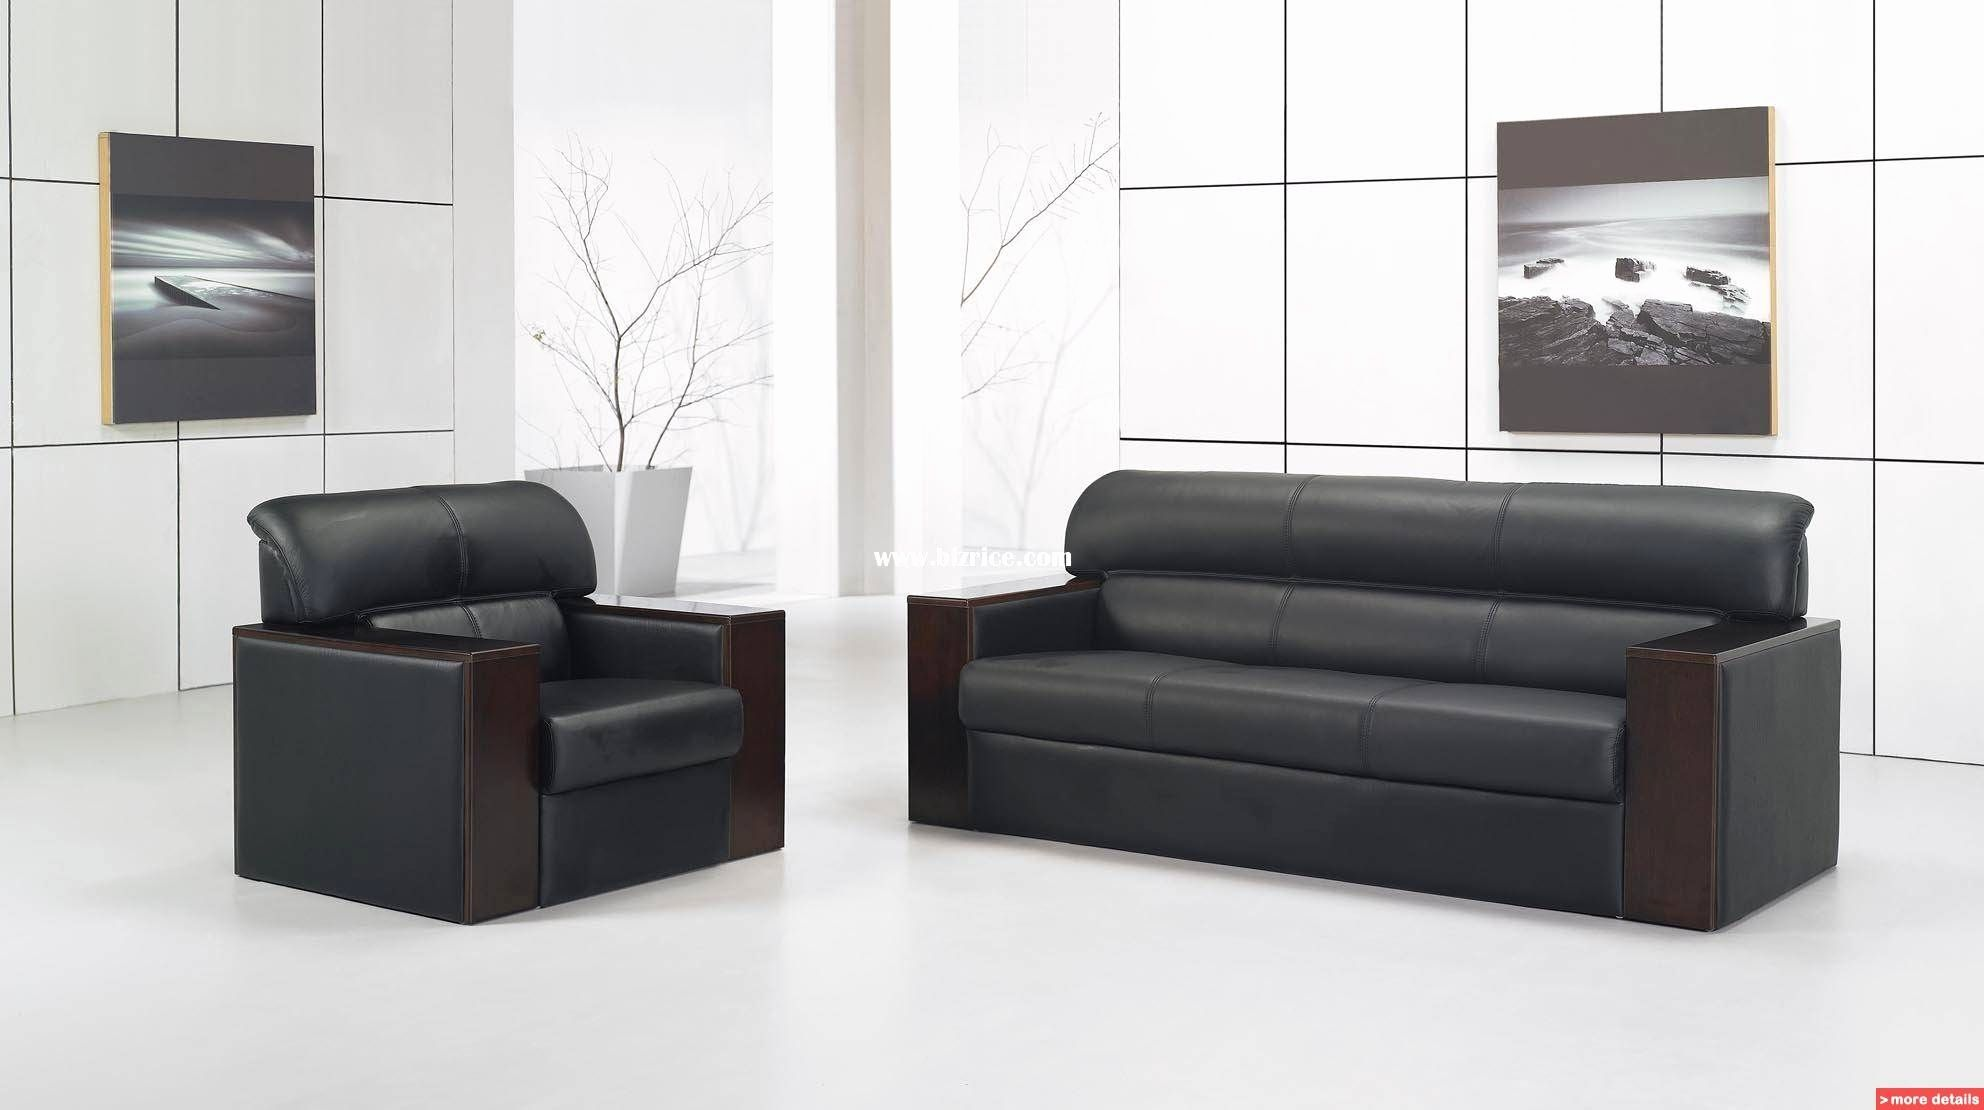 Best Of Office Reception sofas Art Office Reception sofas ...